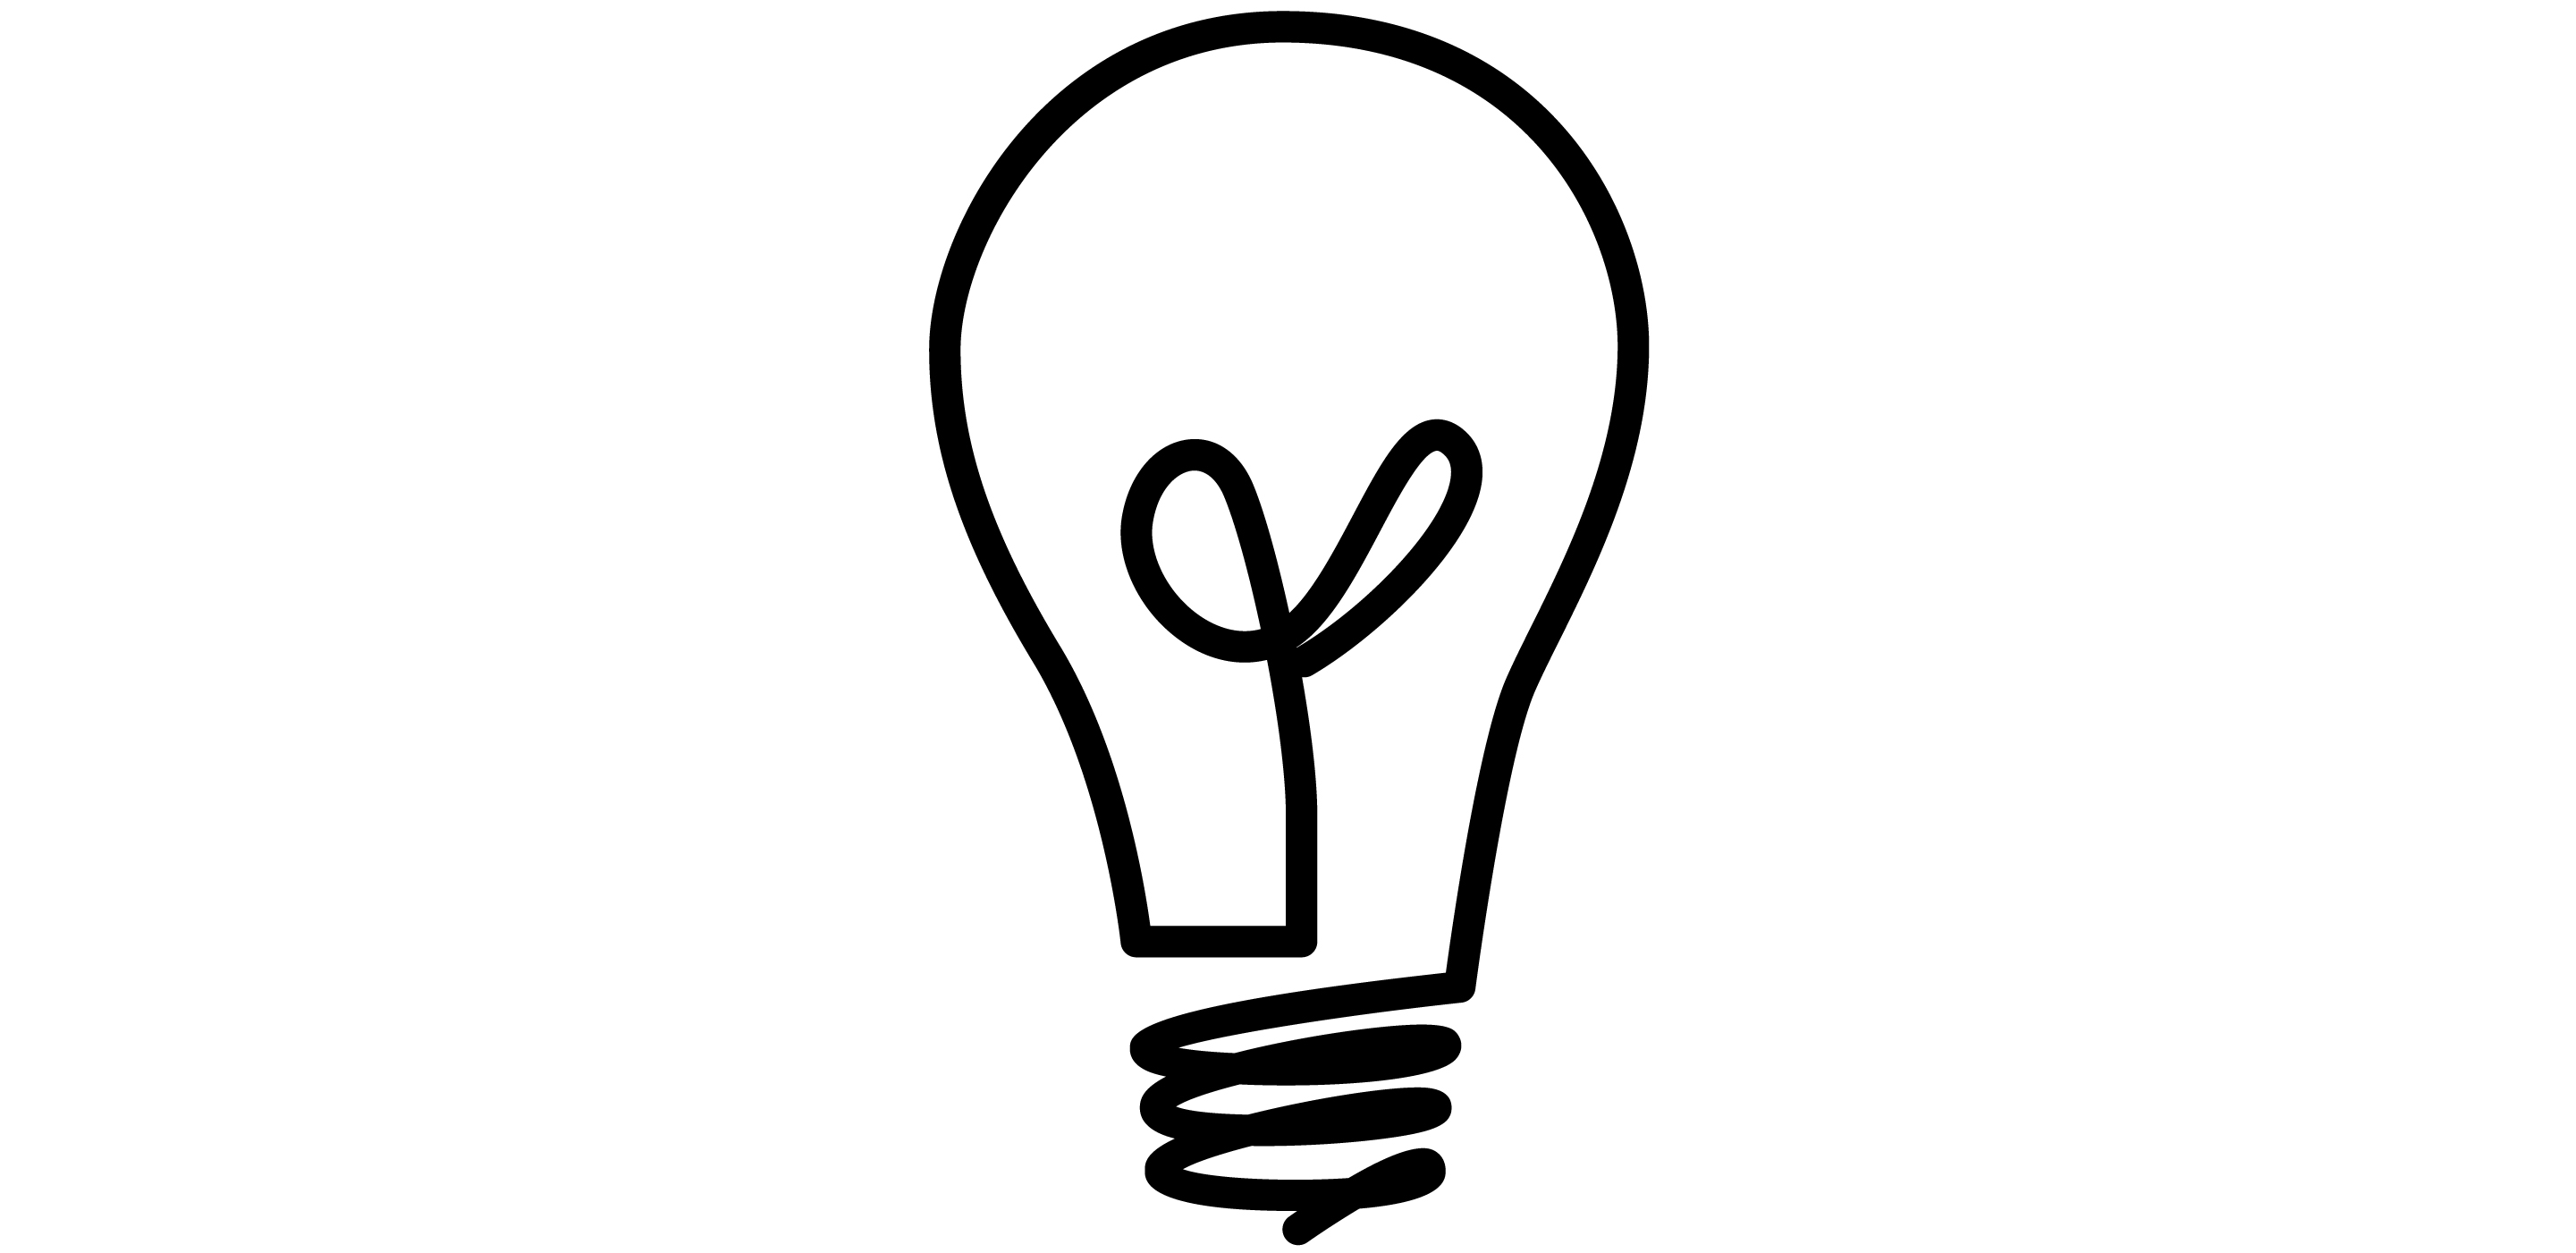 Lightbulb light bulb clipart images illustrations photos